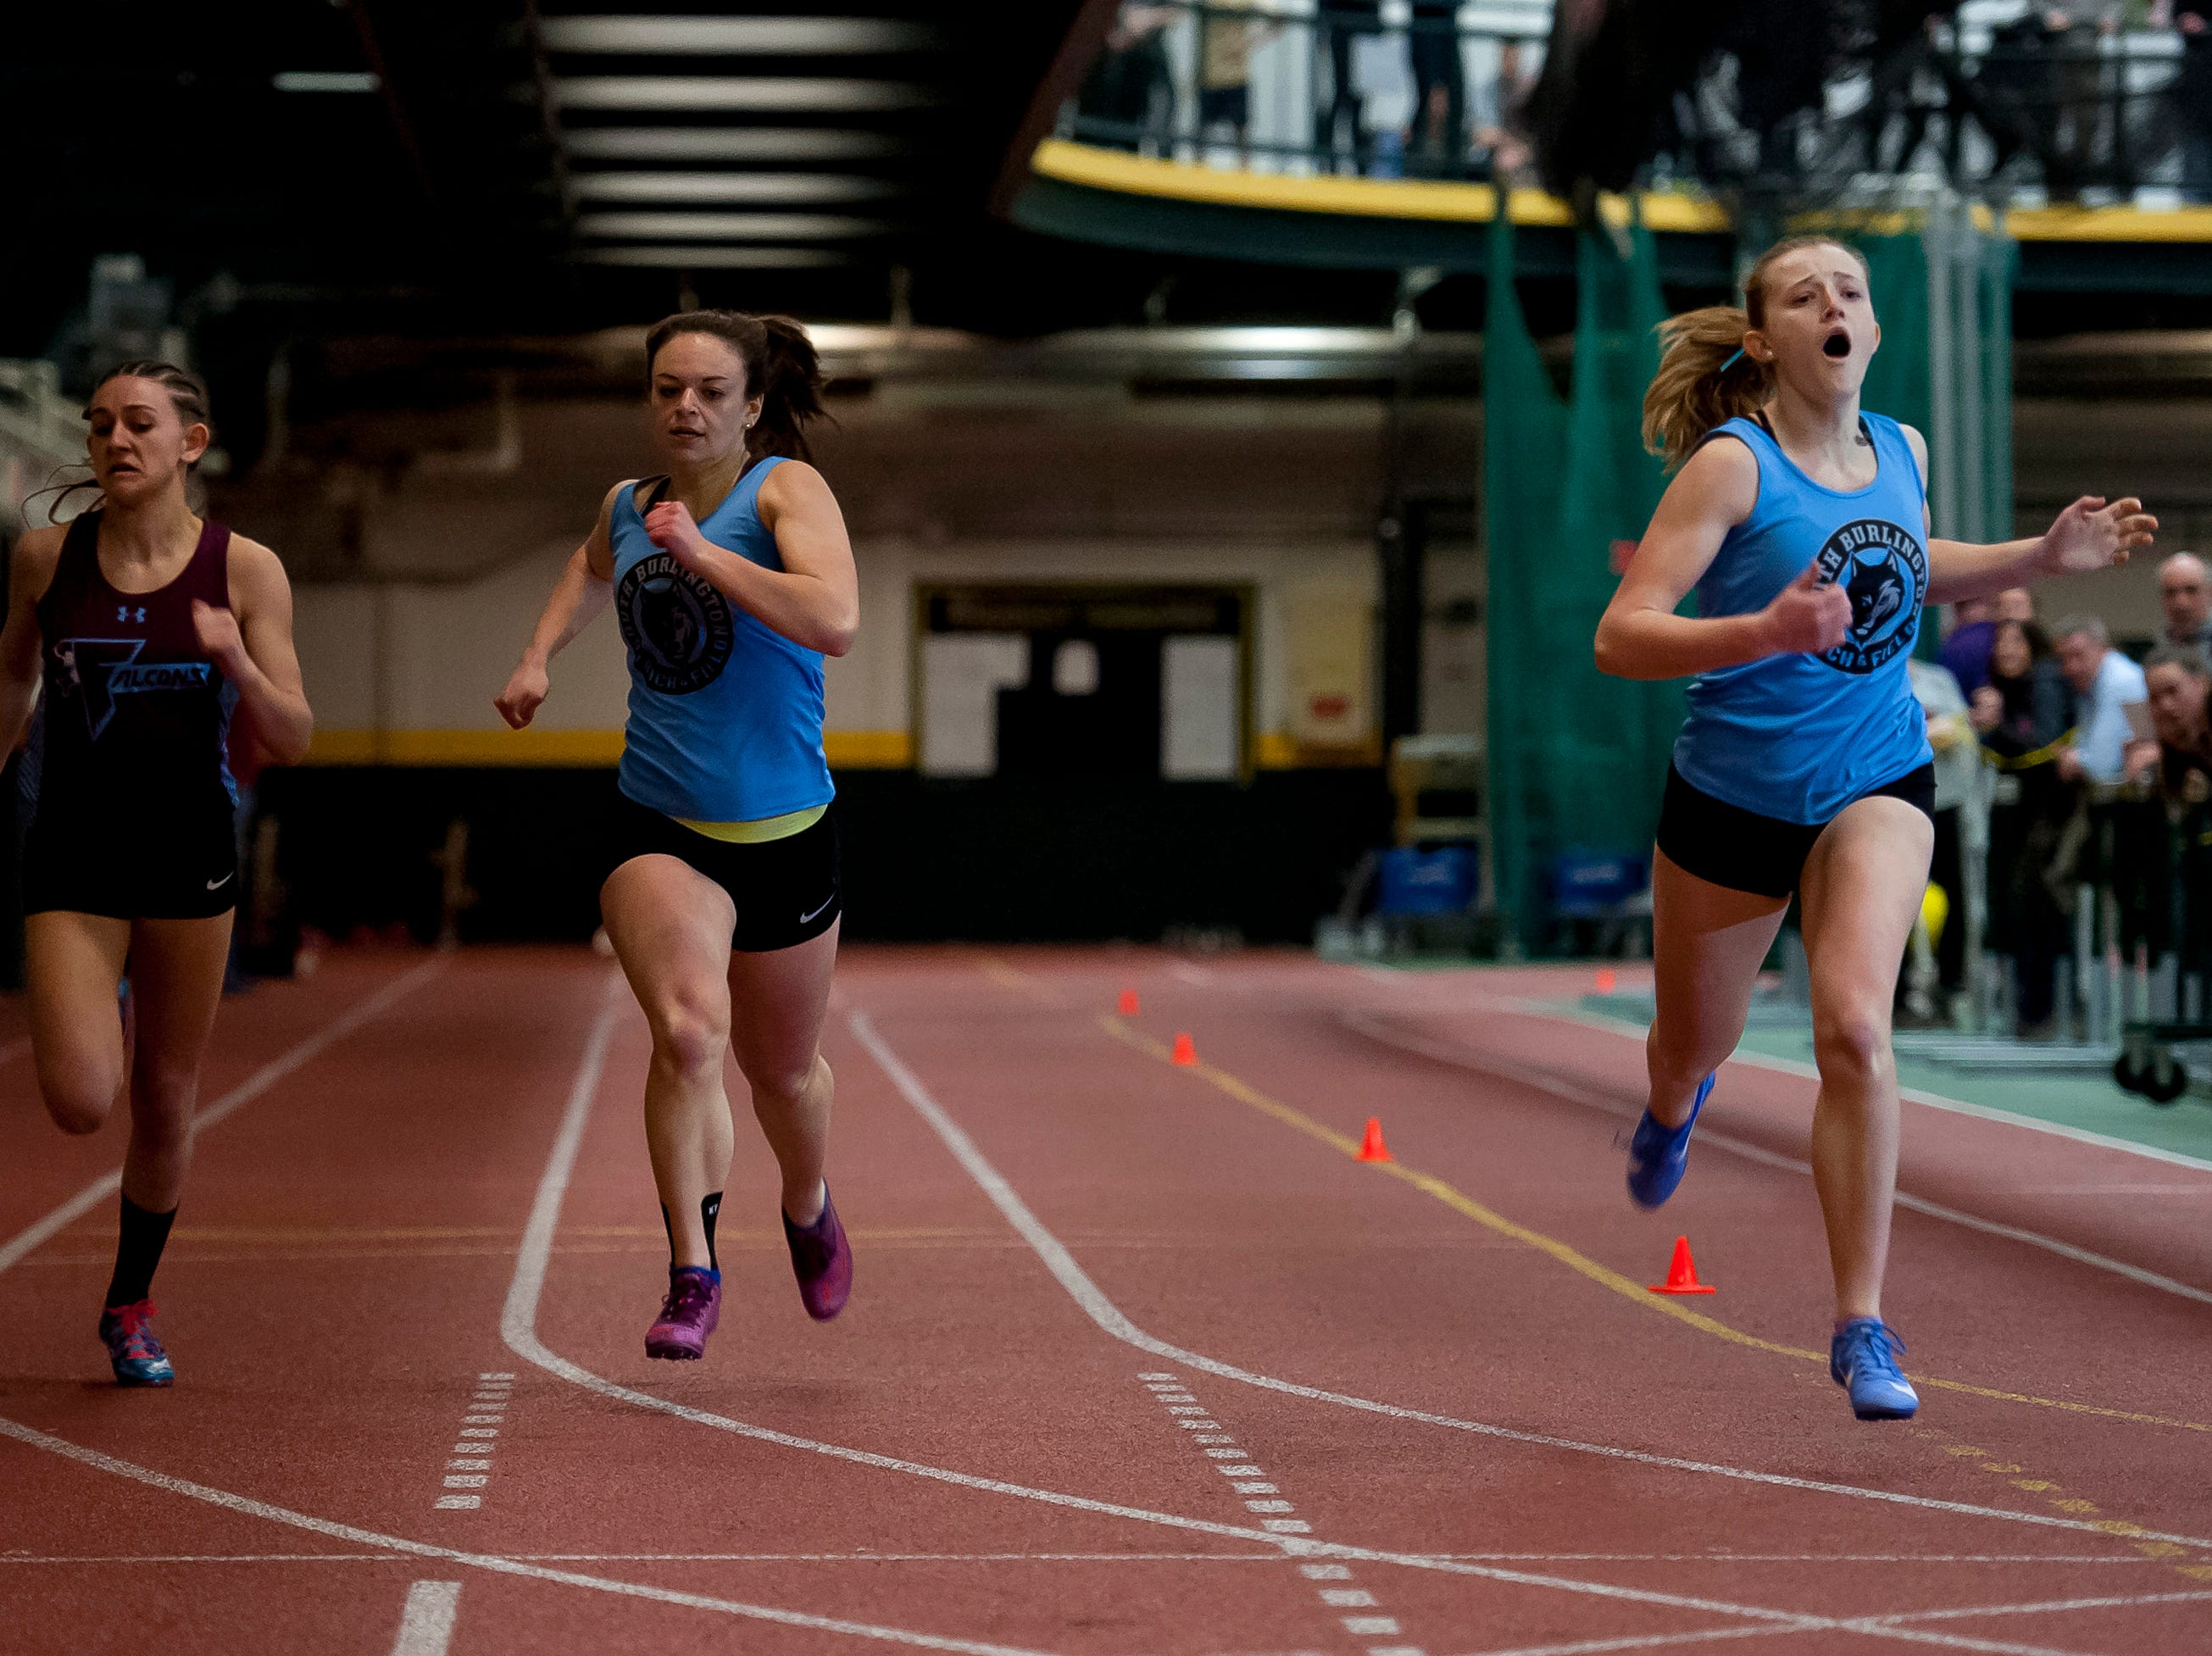 South Burlington's Odessa O'Brien, right, and Cora Kakalec near the finish line alongside North Country's Alexis Lefaivre in the girls 300 meter dash at the high school indoor track state championships at the University of Vermont on Saturday.